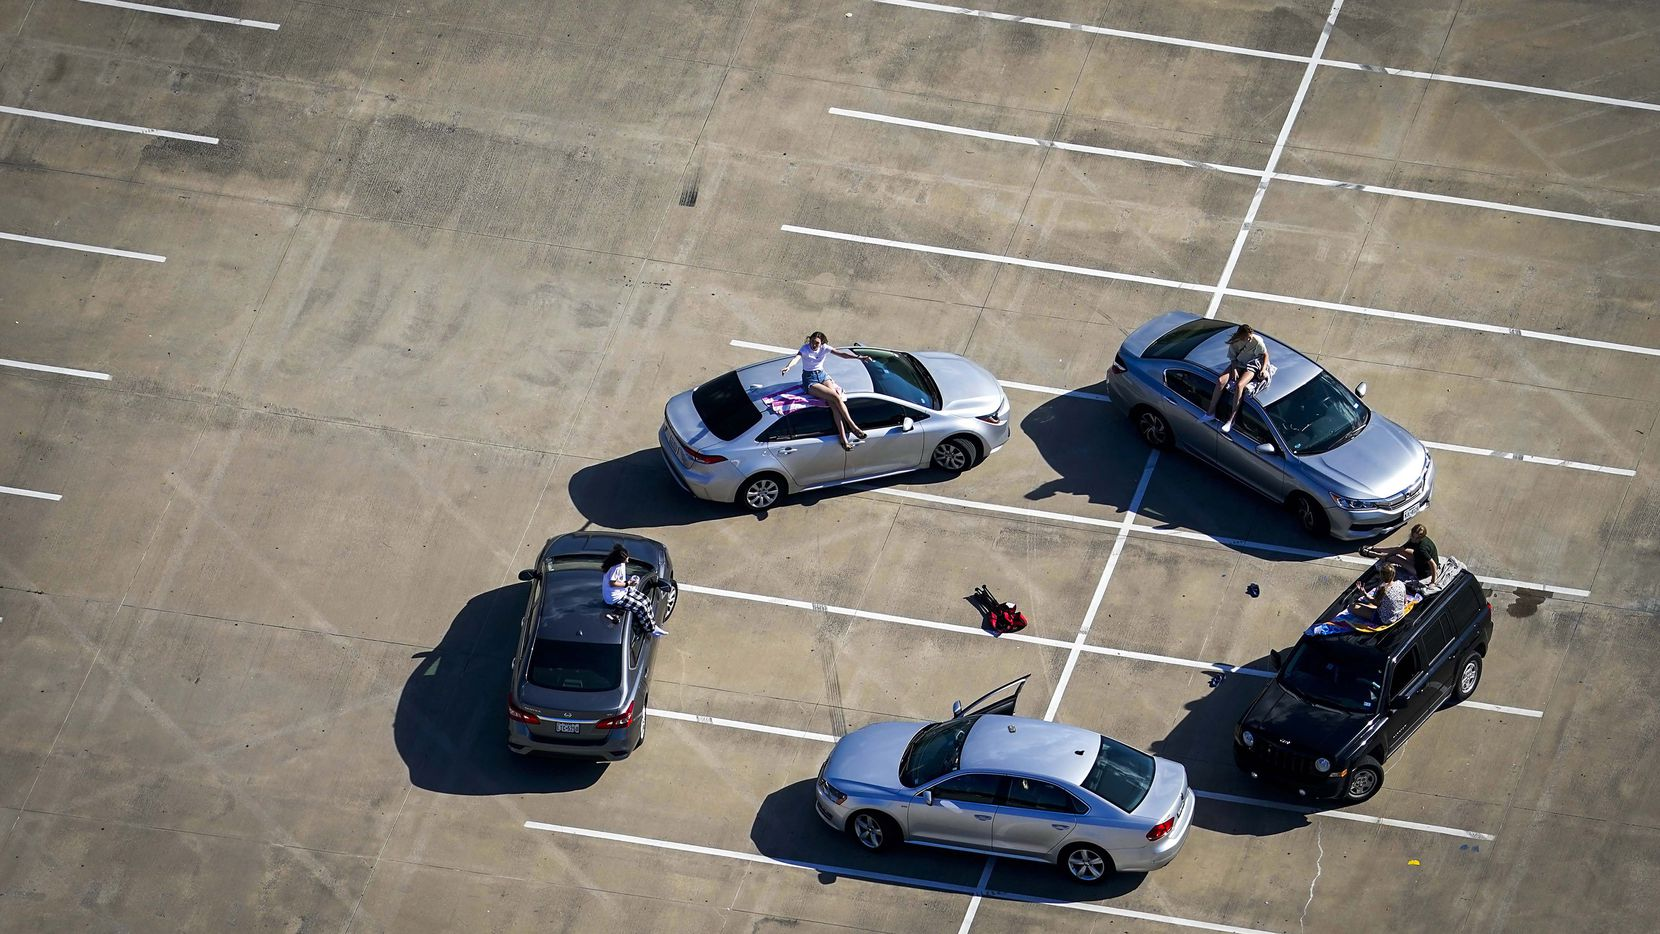 Young people gather in the parking lot of McKinney High School on Tuesday, March 24, 2020.